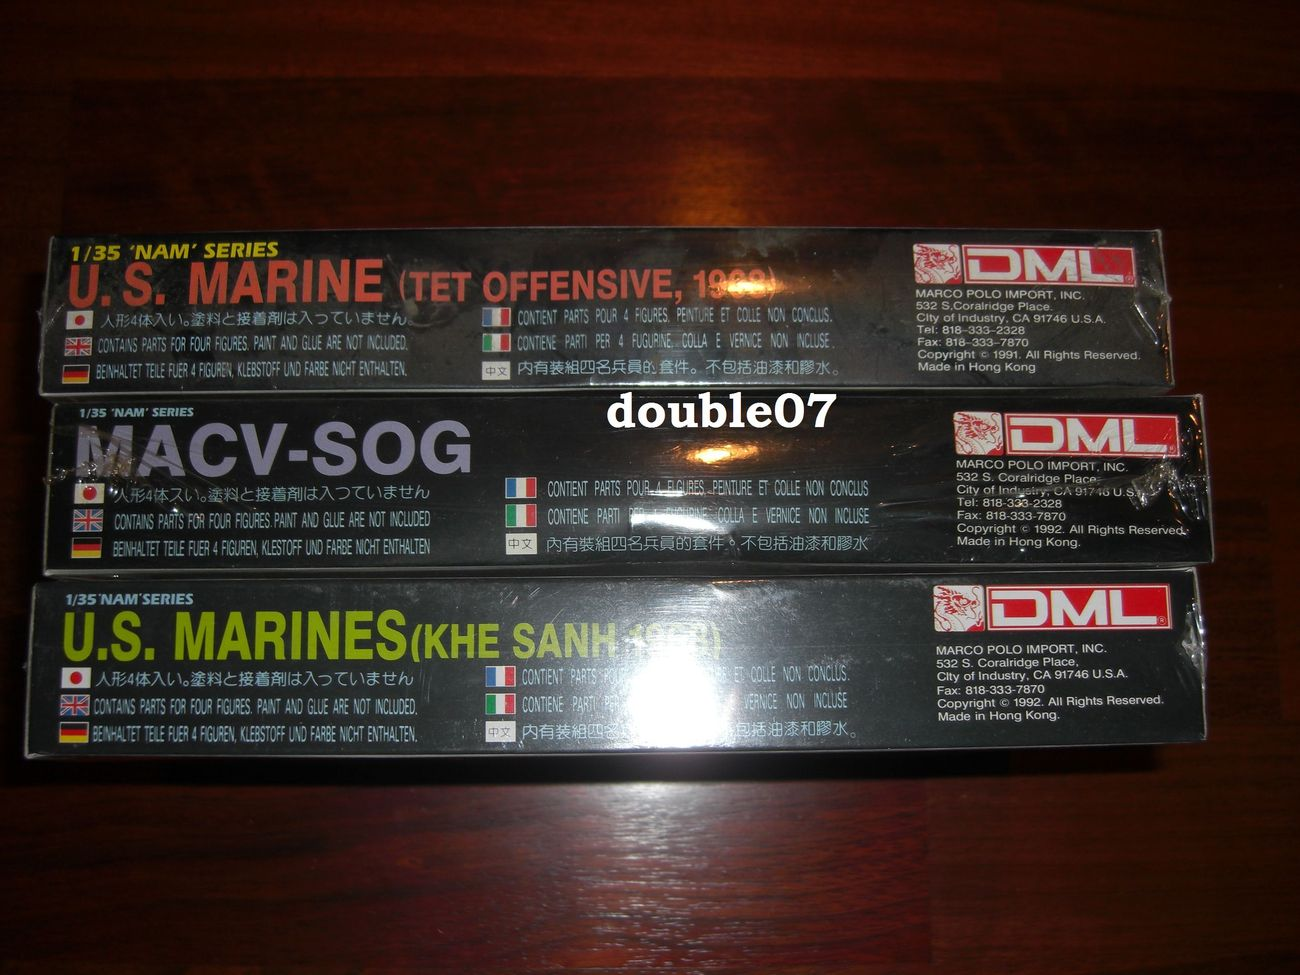 DML 1/35 'Nam' Series IN SHRINK WRAP 3305 3306 3307 (lot of 3)